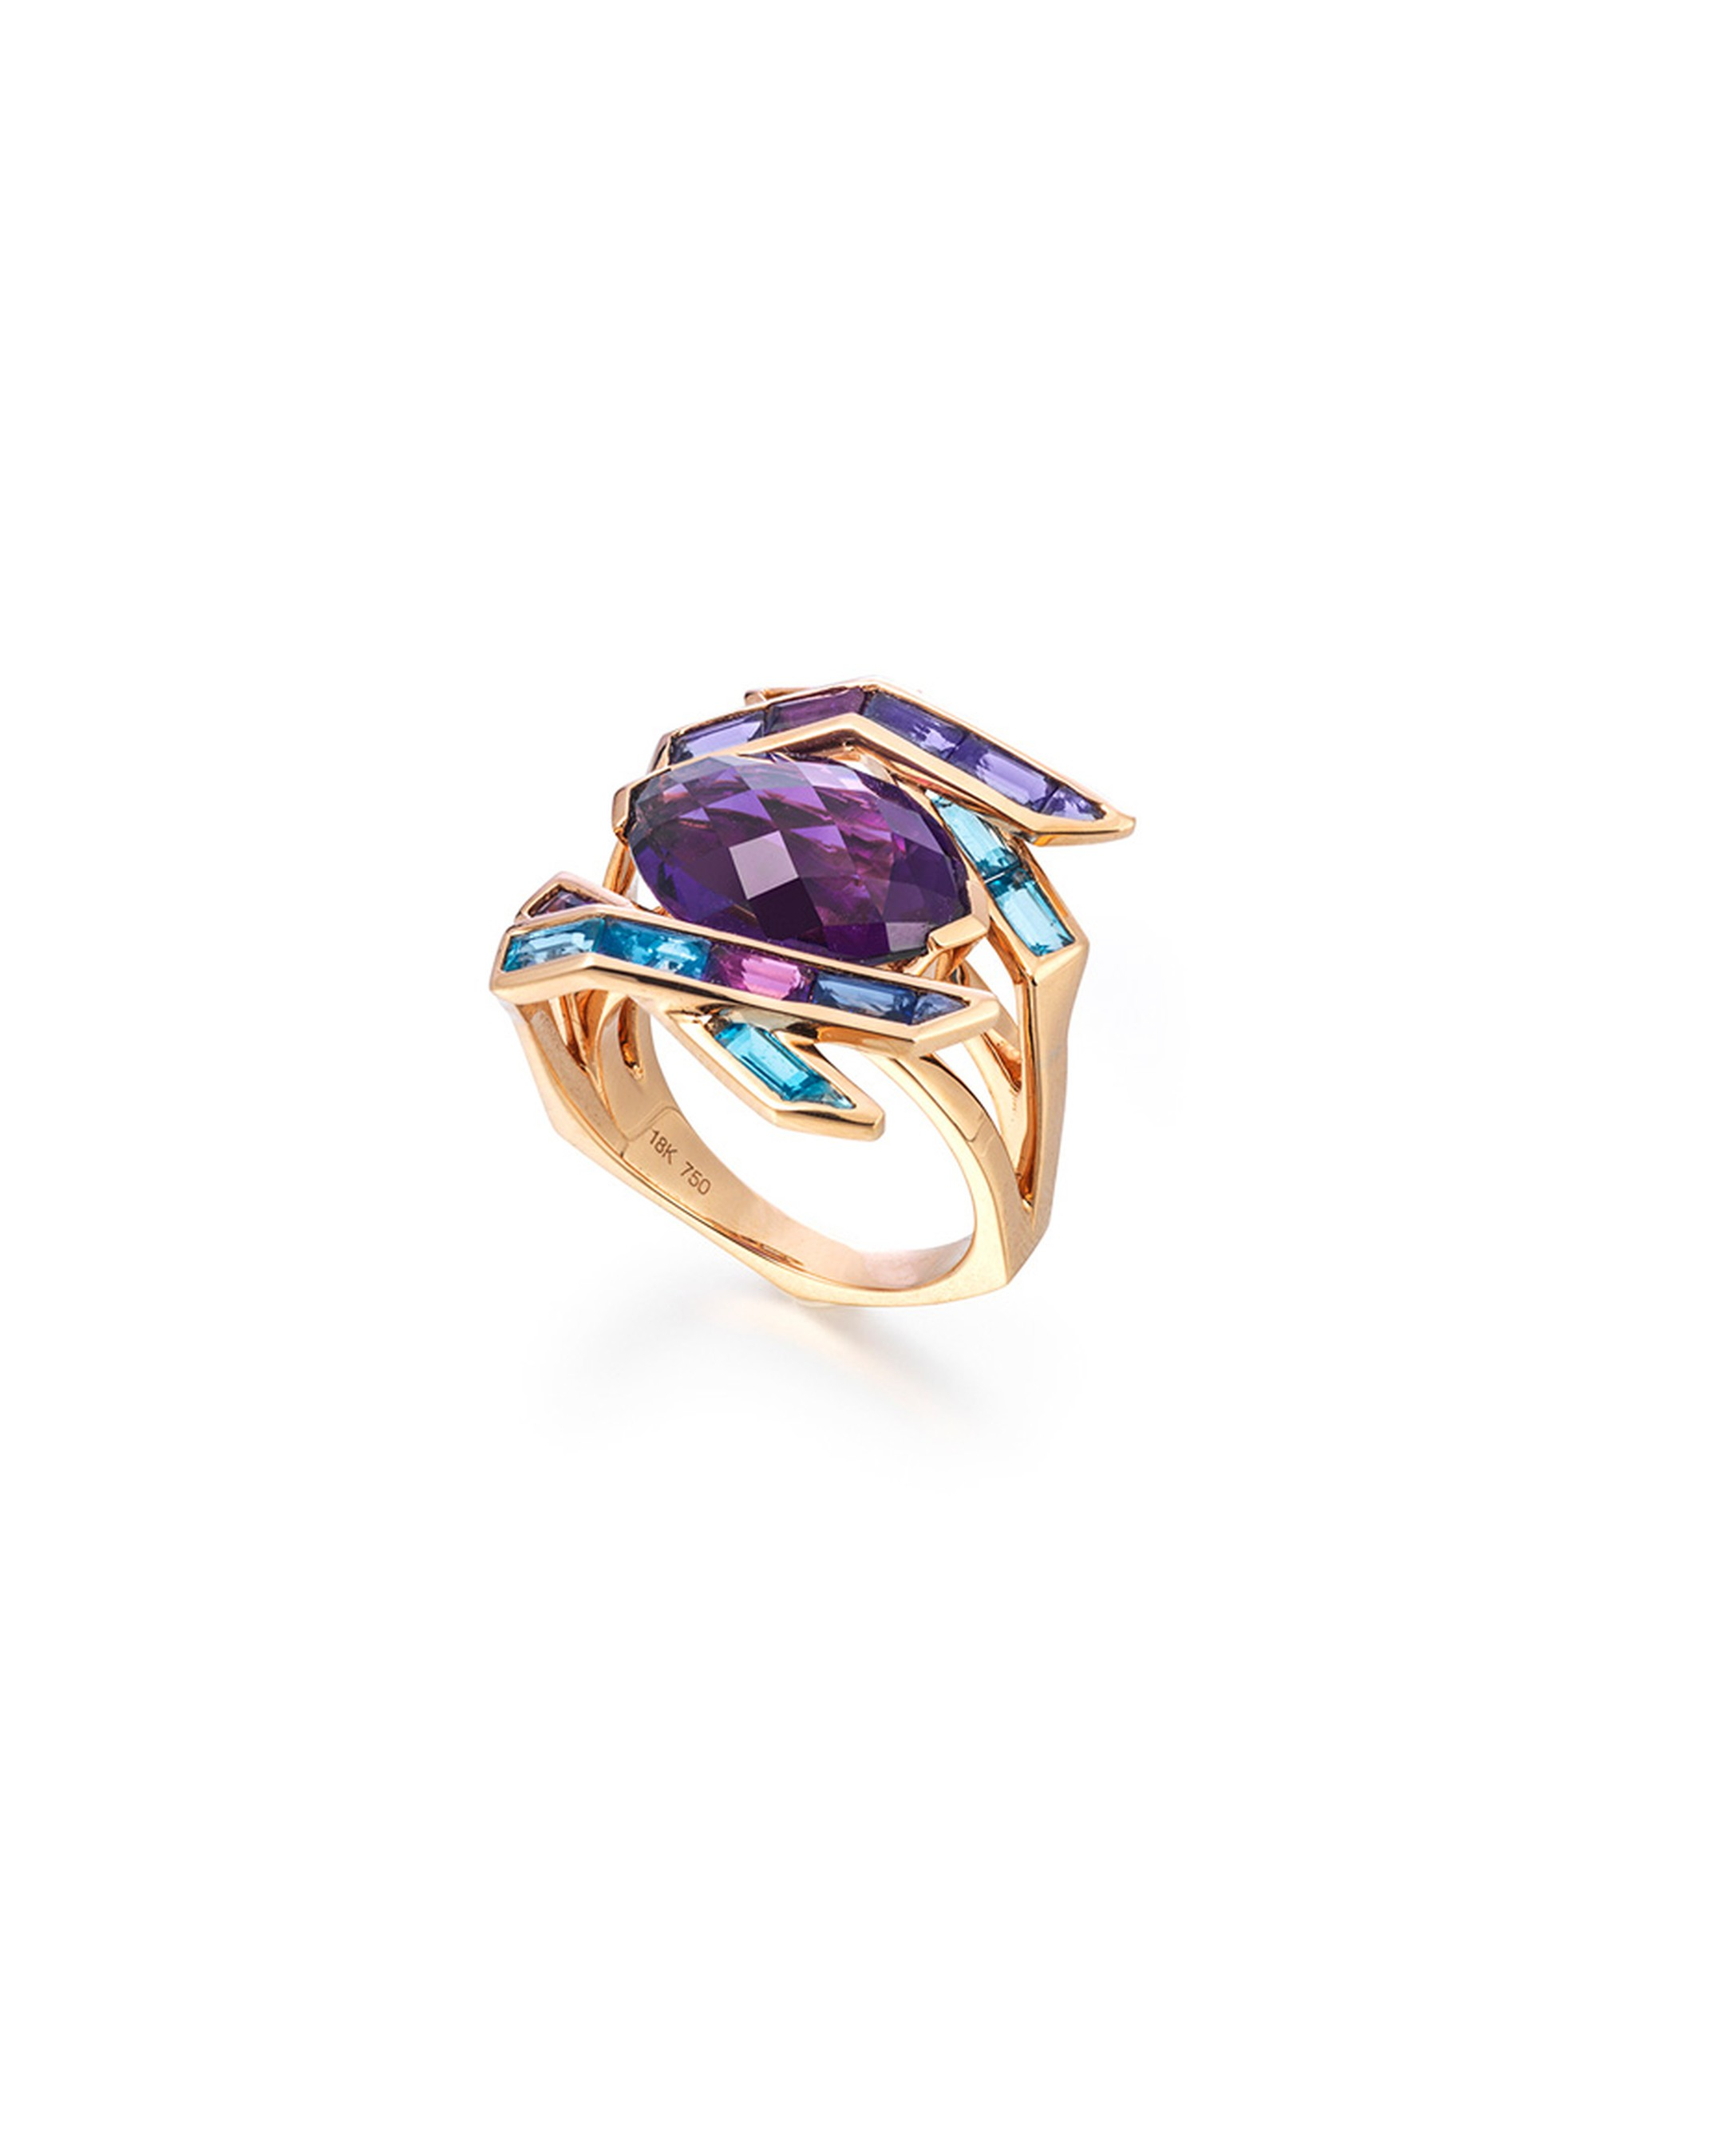 Tomasz Donocik cocktail ring in rose gold with coloured gemstones from the new Electric Night collection.